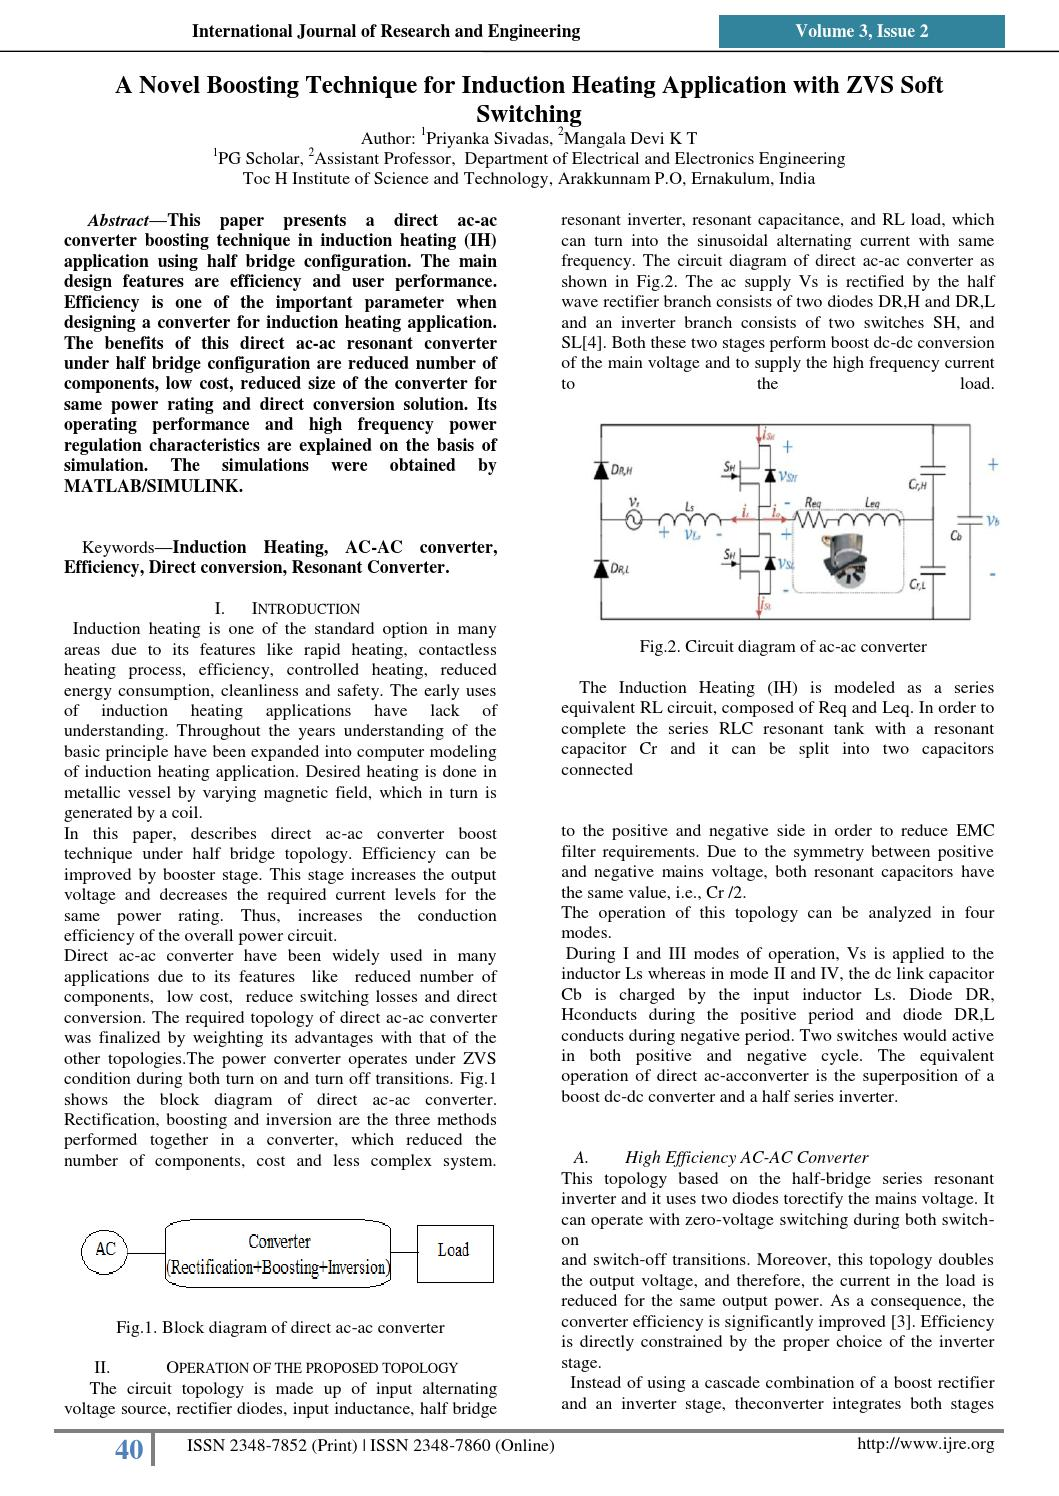 Ijre 8 A Novel Boosting Technique For Induction Heating Application H Bridge Block Diagram With Zvs Soft Switching V3i2 U30 By International Journal Of Research And Engineering